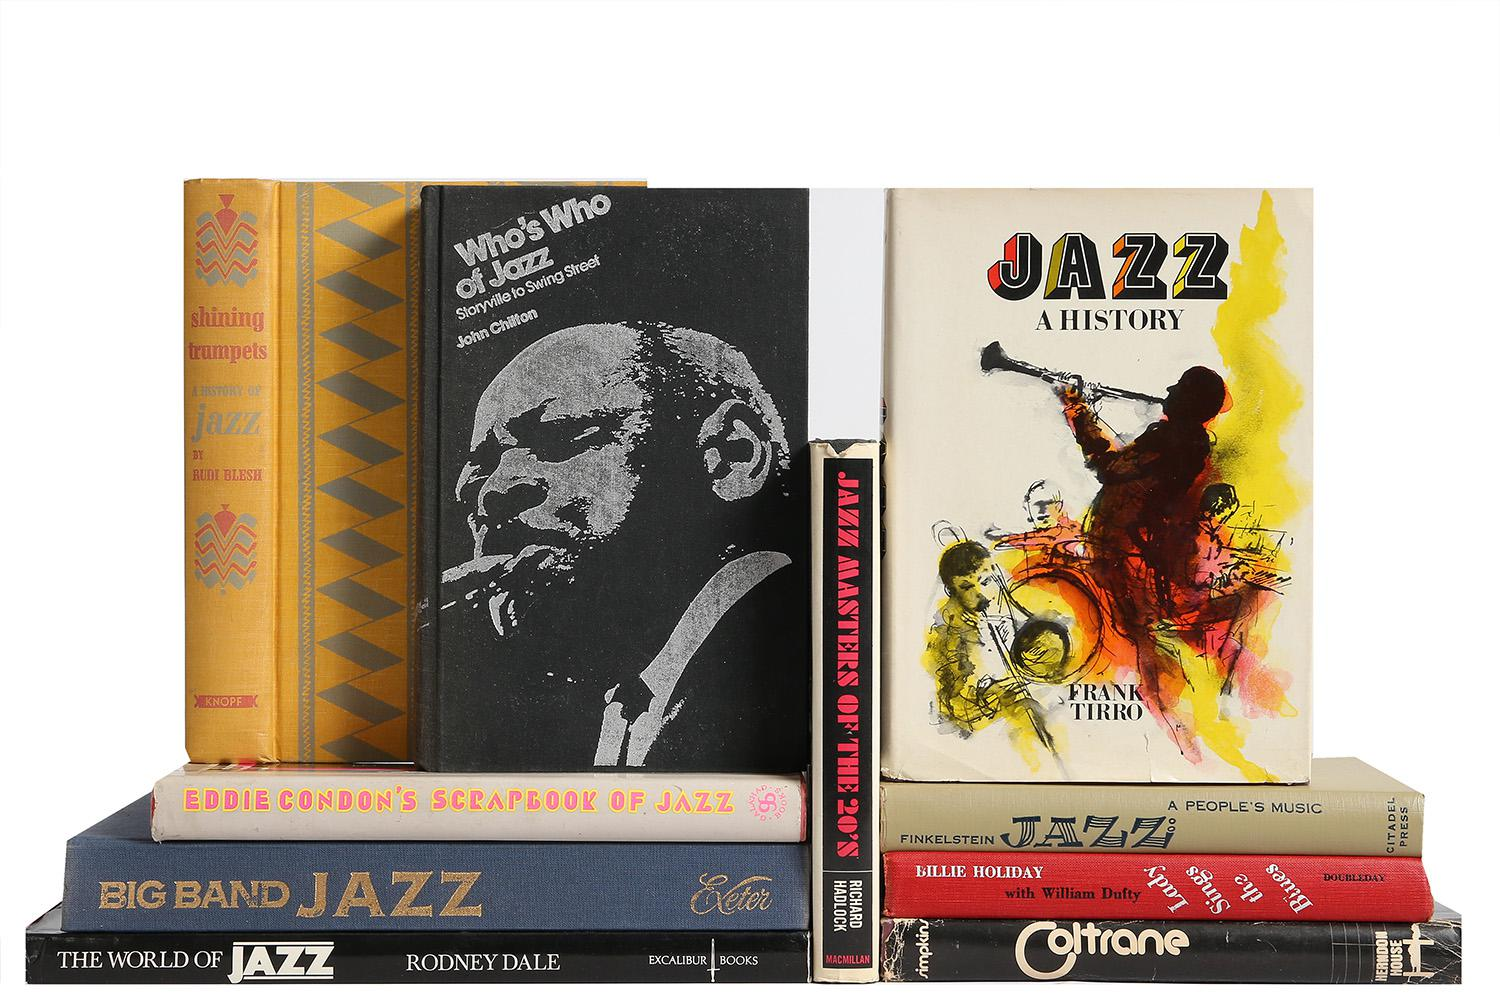 history of jazz vs history of The history of jazz - jazz is a music genre believed to have begun at the beginning of the 20th, where scholars argue that its birth came from african-american.